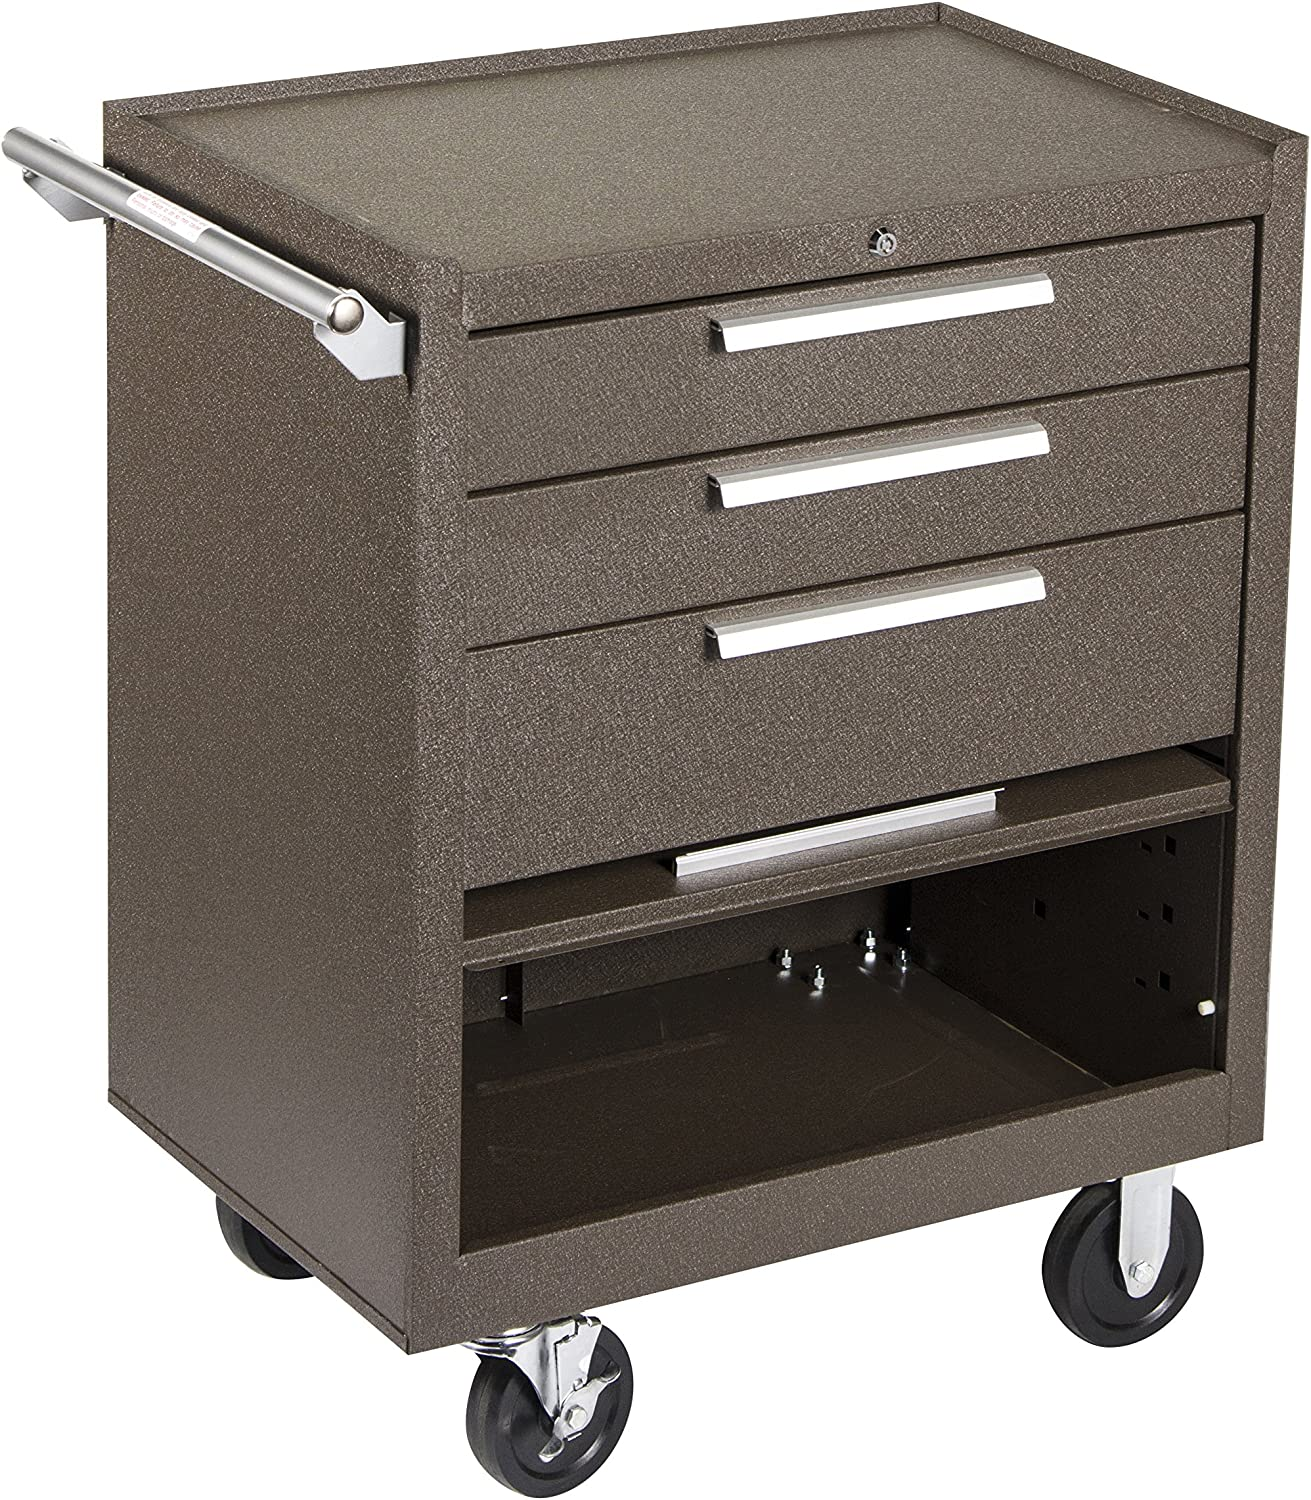 "Kennedy Manufacturing 273Xb 27"" 3-Drawer Industrial Tool Storage Roller Cabinet With Chest And Wheels, Tan Brown Wrinkle"